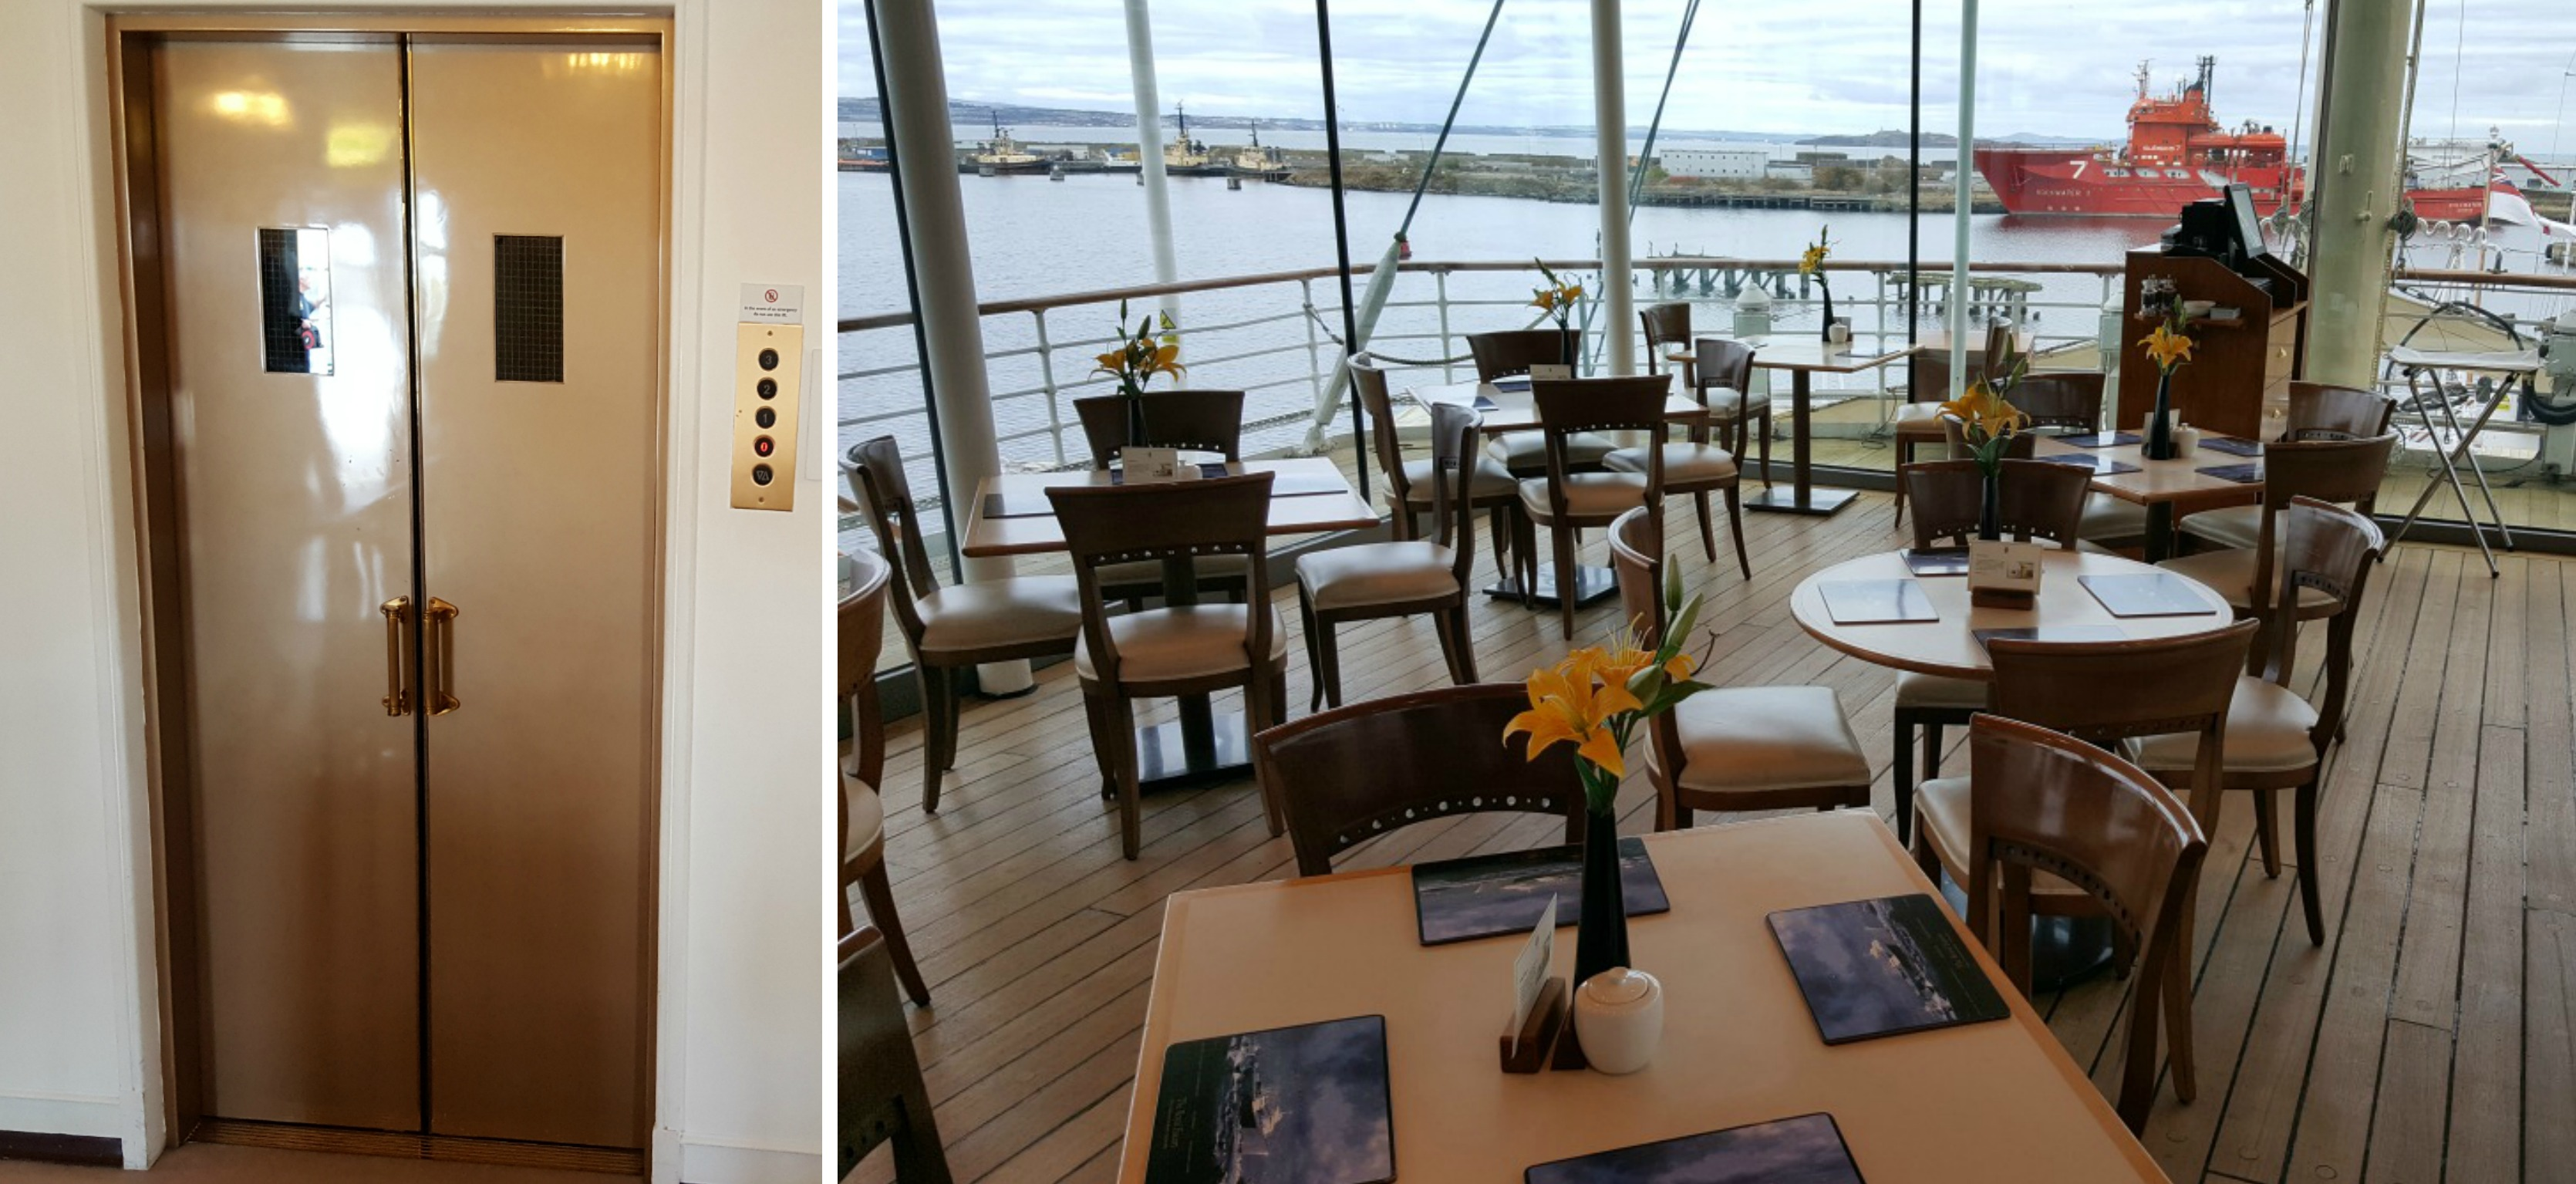 the-royal-yacht-britannia-royal-deck-tea-room-wheelchair-access-lift